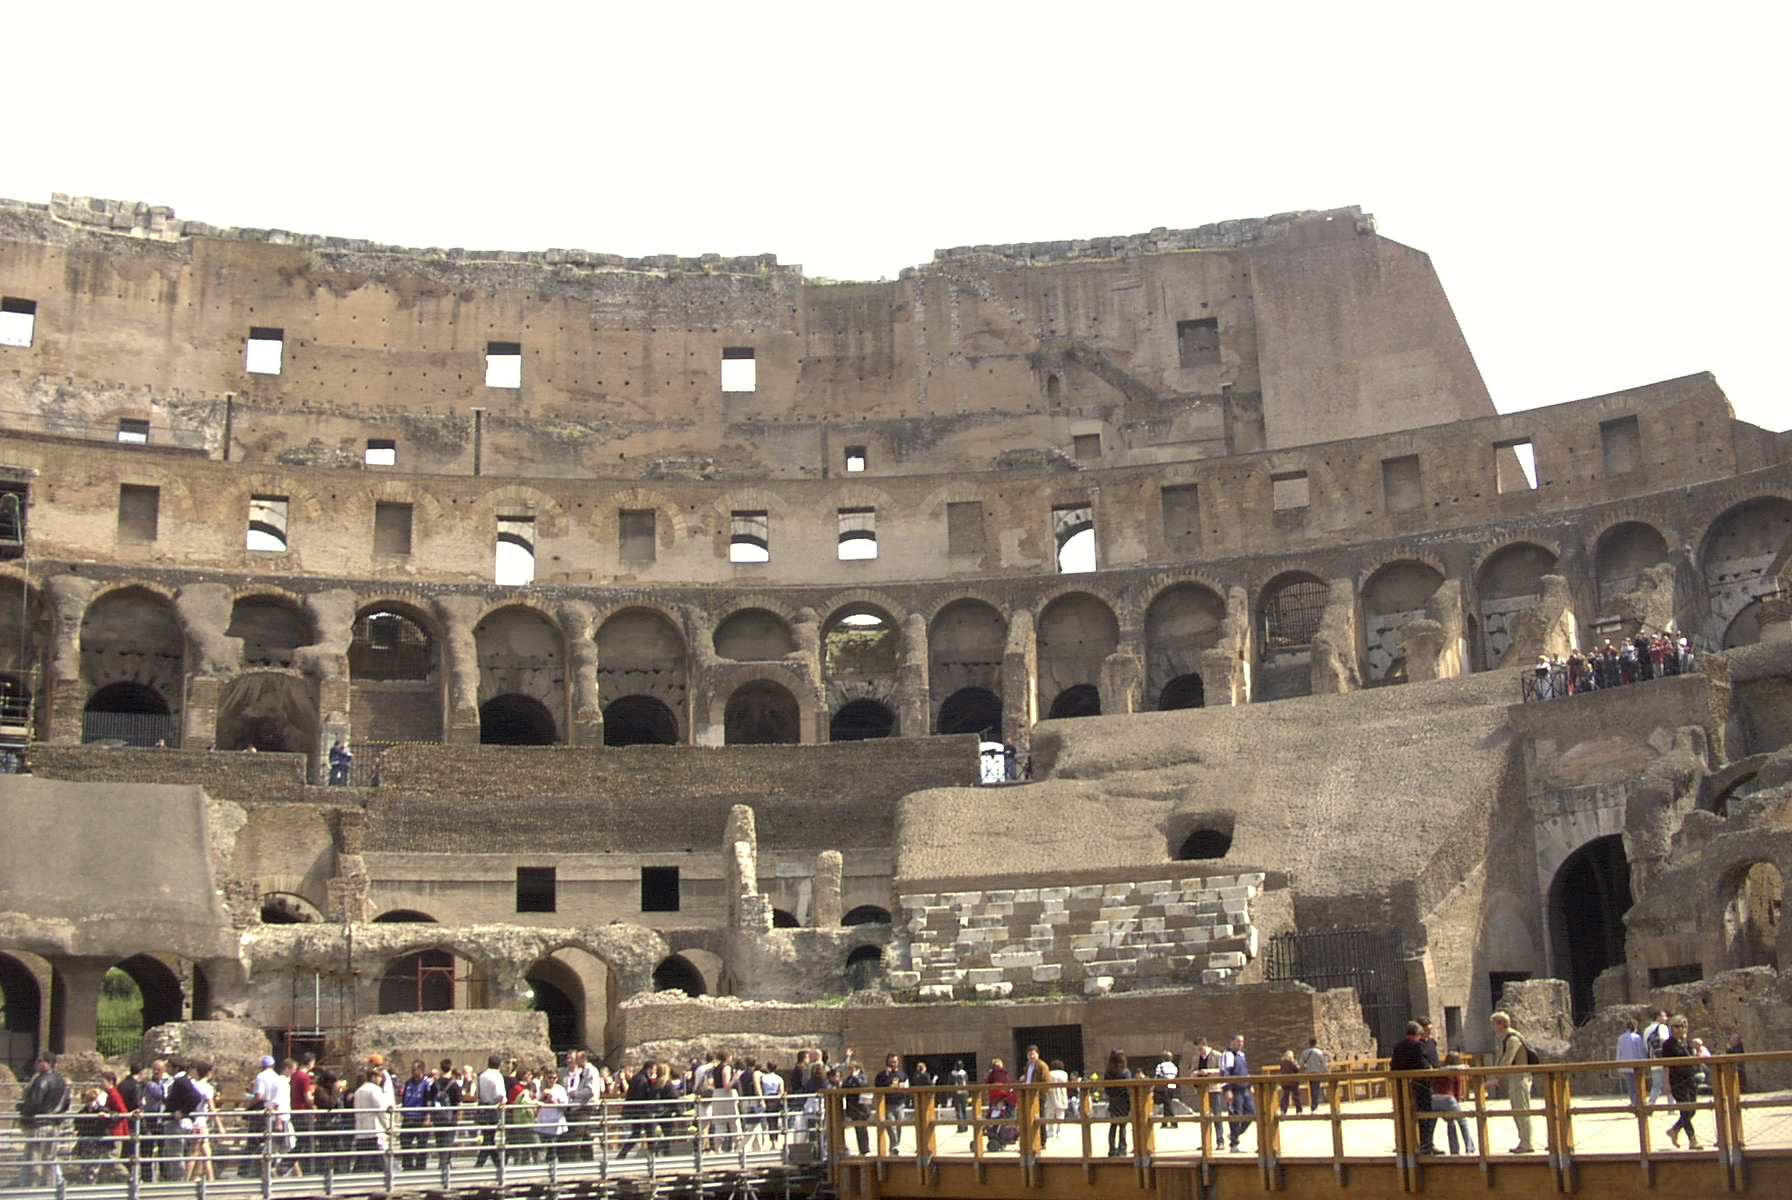 Interior of Colosseo